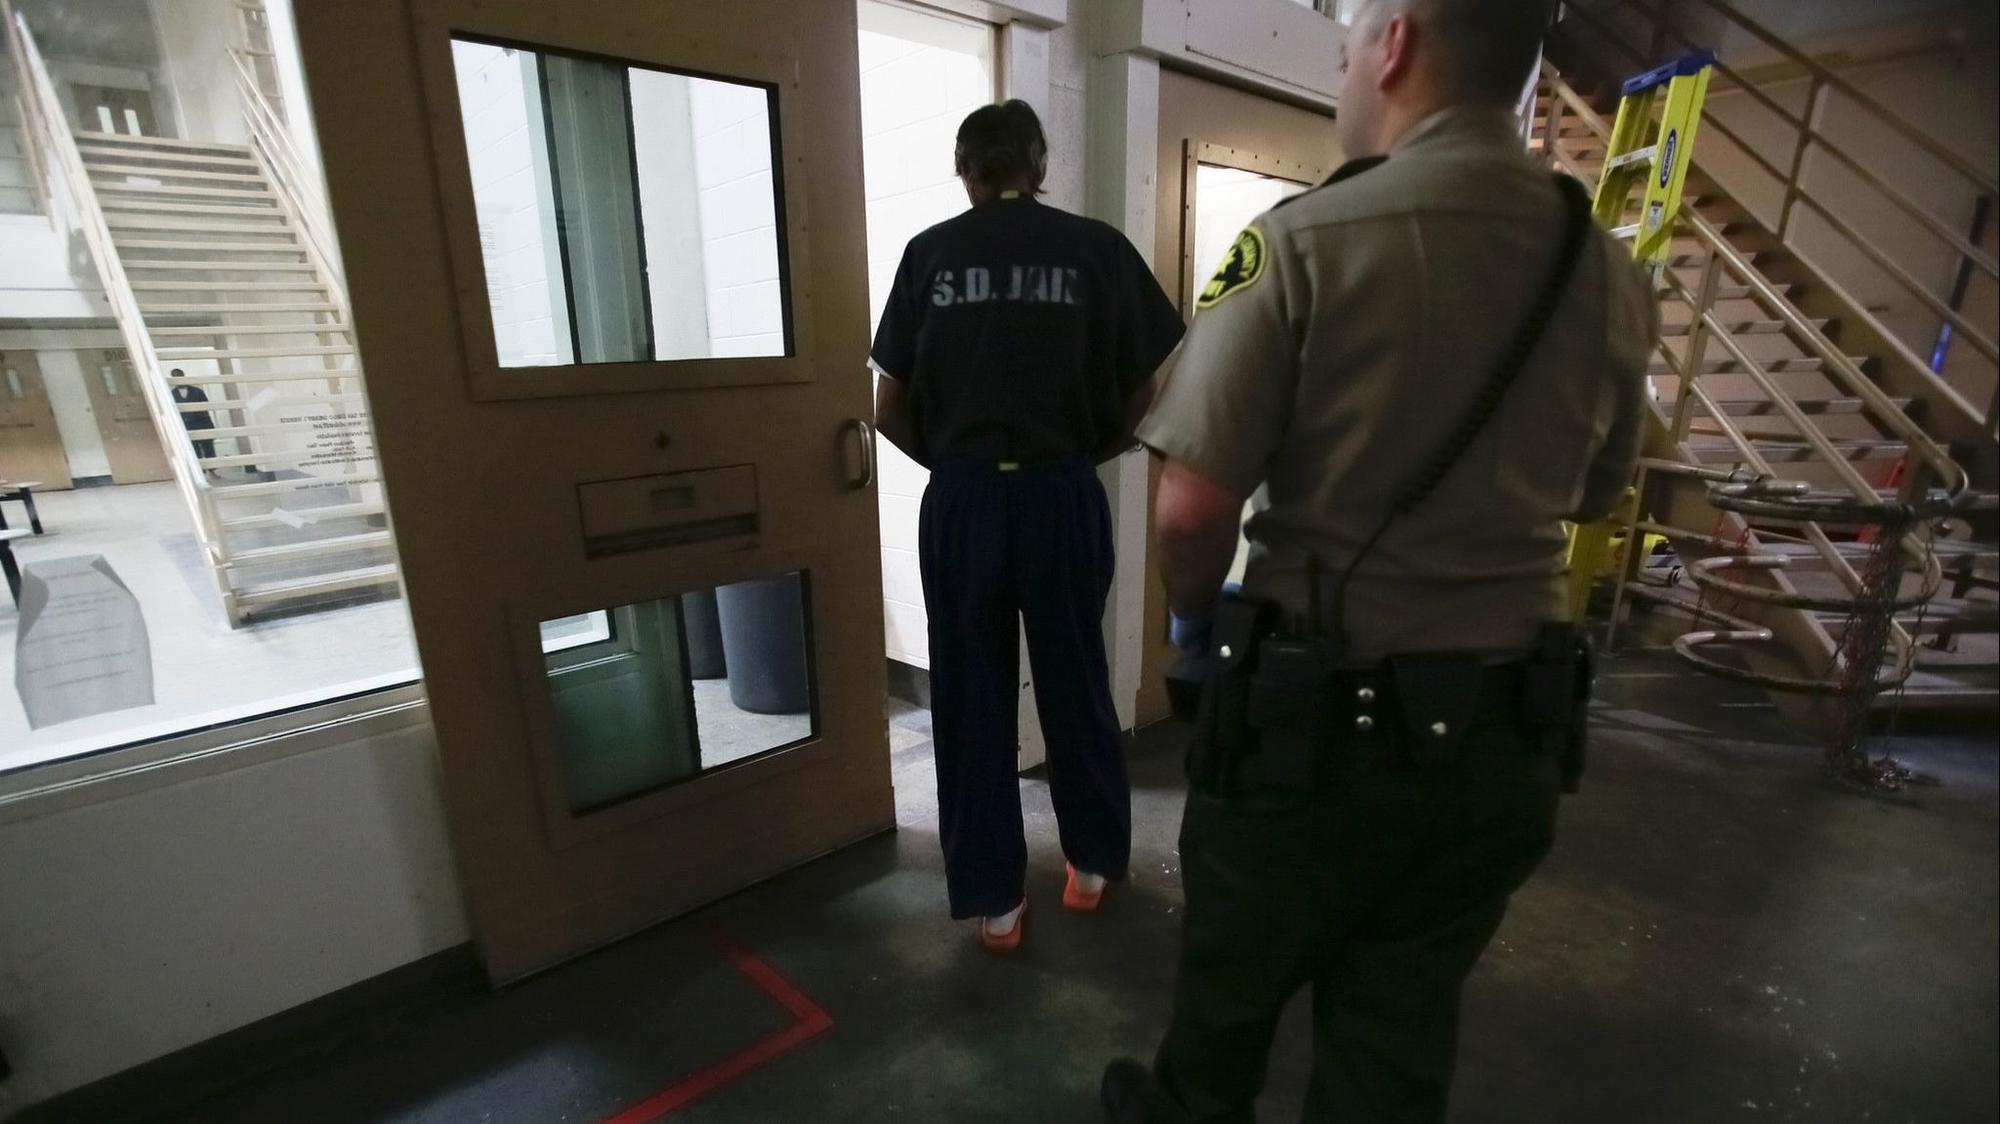 A Sheriff's Deputy escorts an inmate into one of the jail sections in the main line at downtown Central Jail.